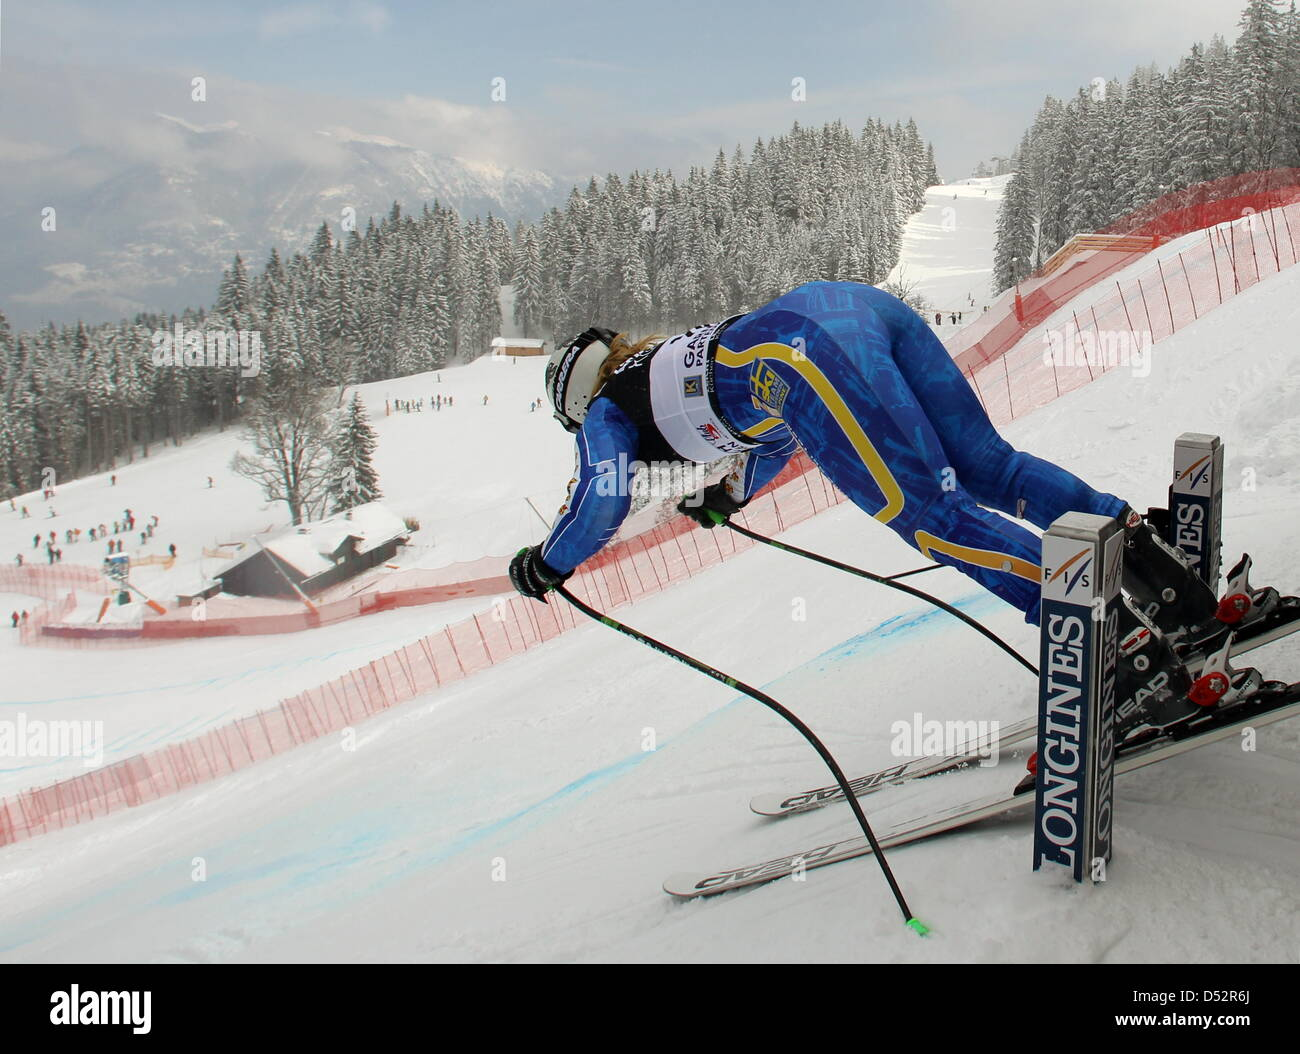 Swedish Anja Paerson pictured during the downhill training for the final of the Skiing World Cup 2010 at the Kandahar - Stock Image